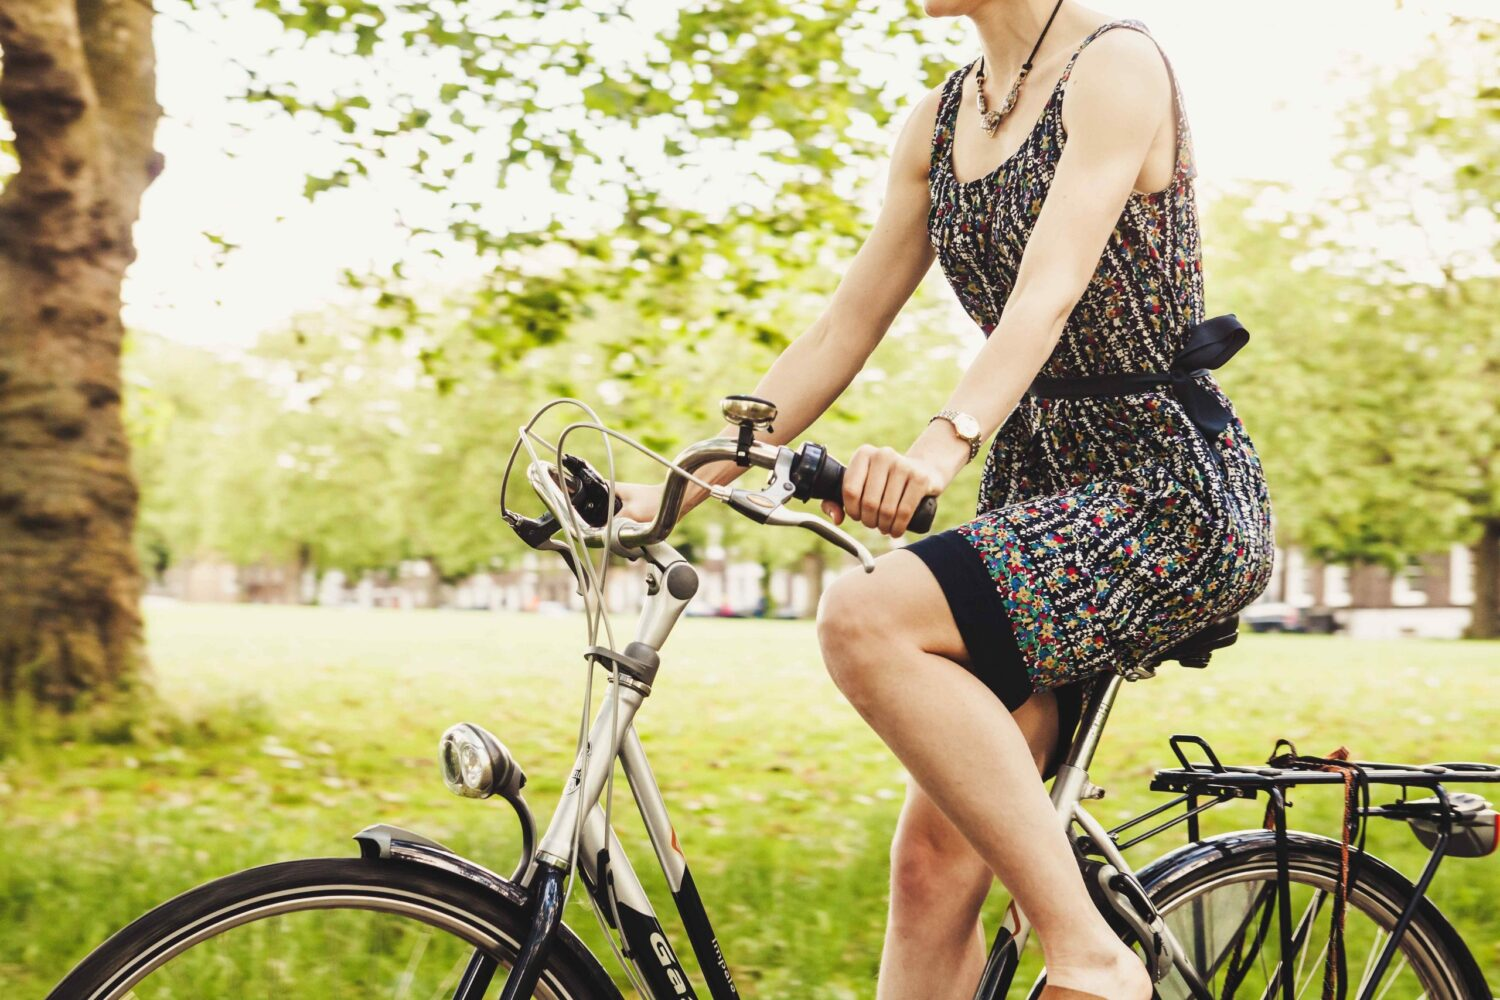 Ride a Bike - 8 Easy Things You Can Do To Boost Your Metabolism Right Now